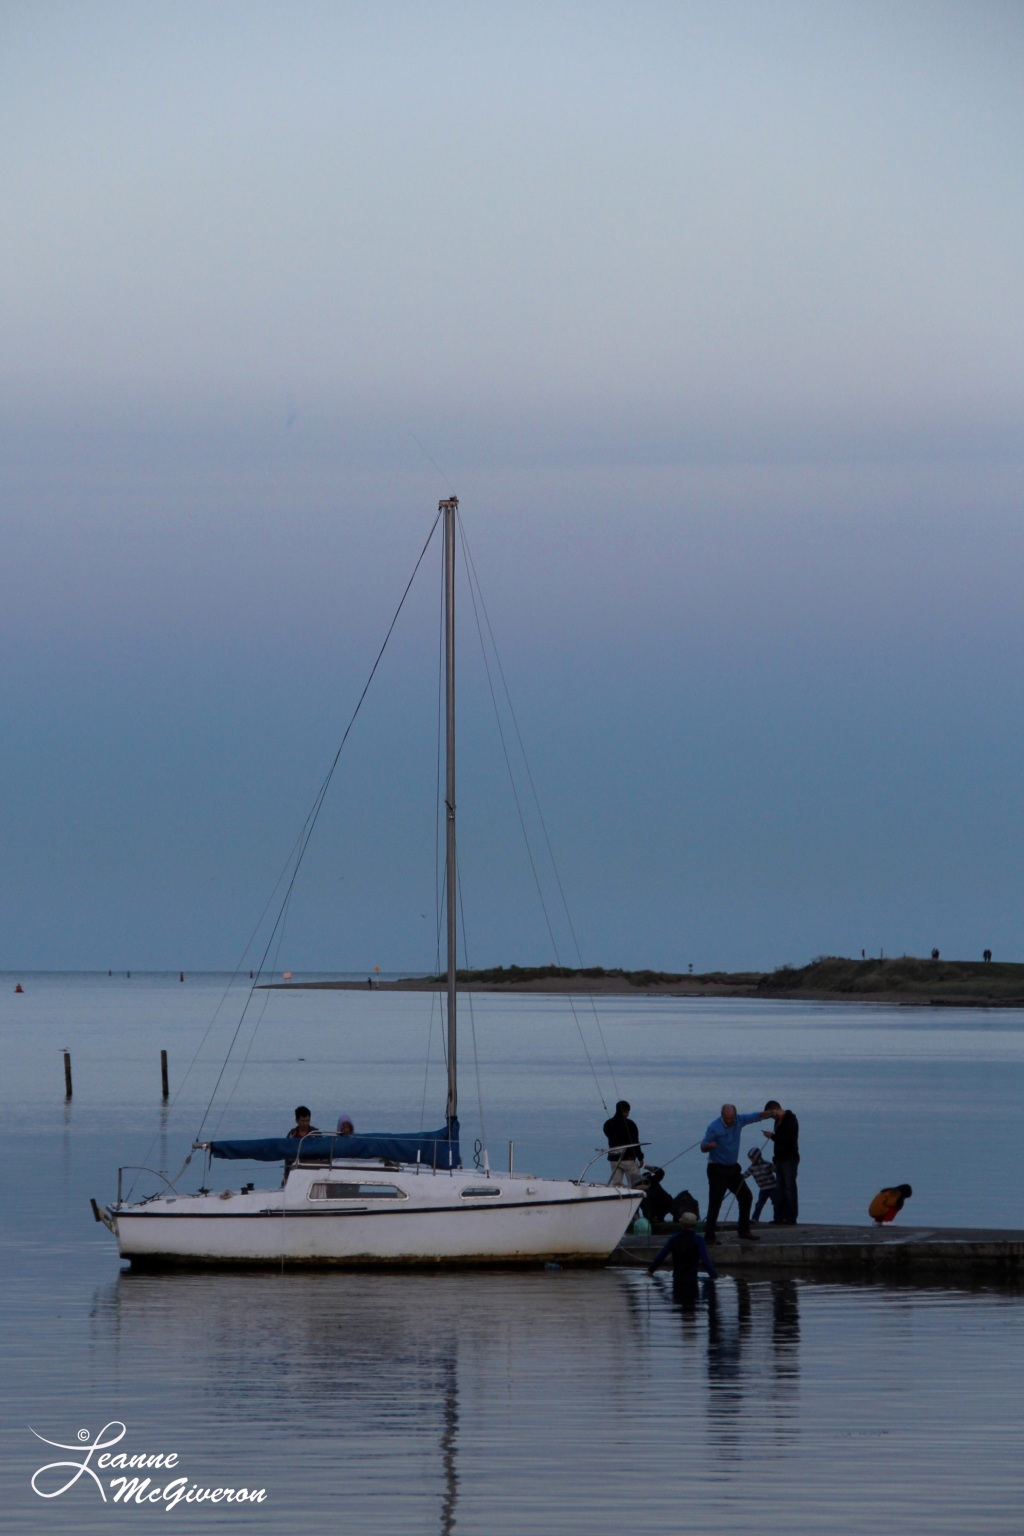 After an Evening Sail, Malahide Harbour, County Dublin